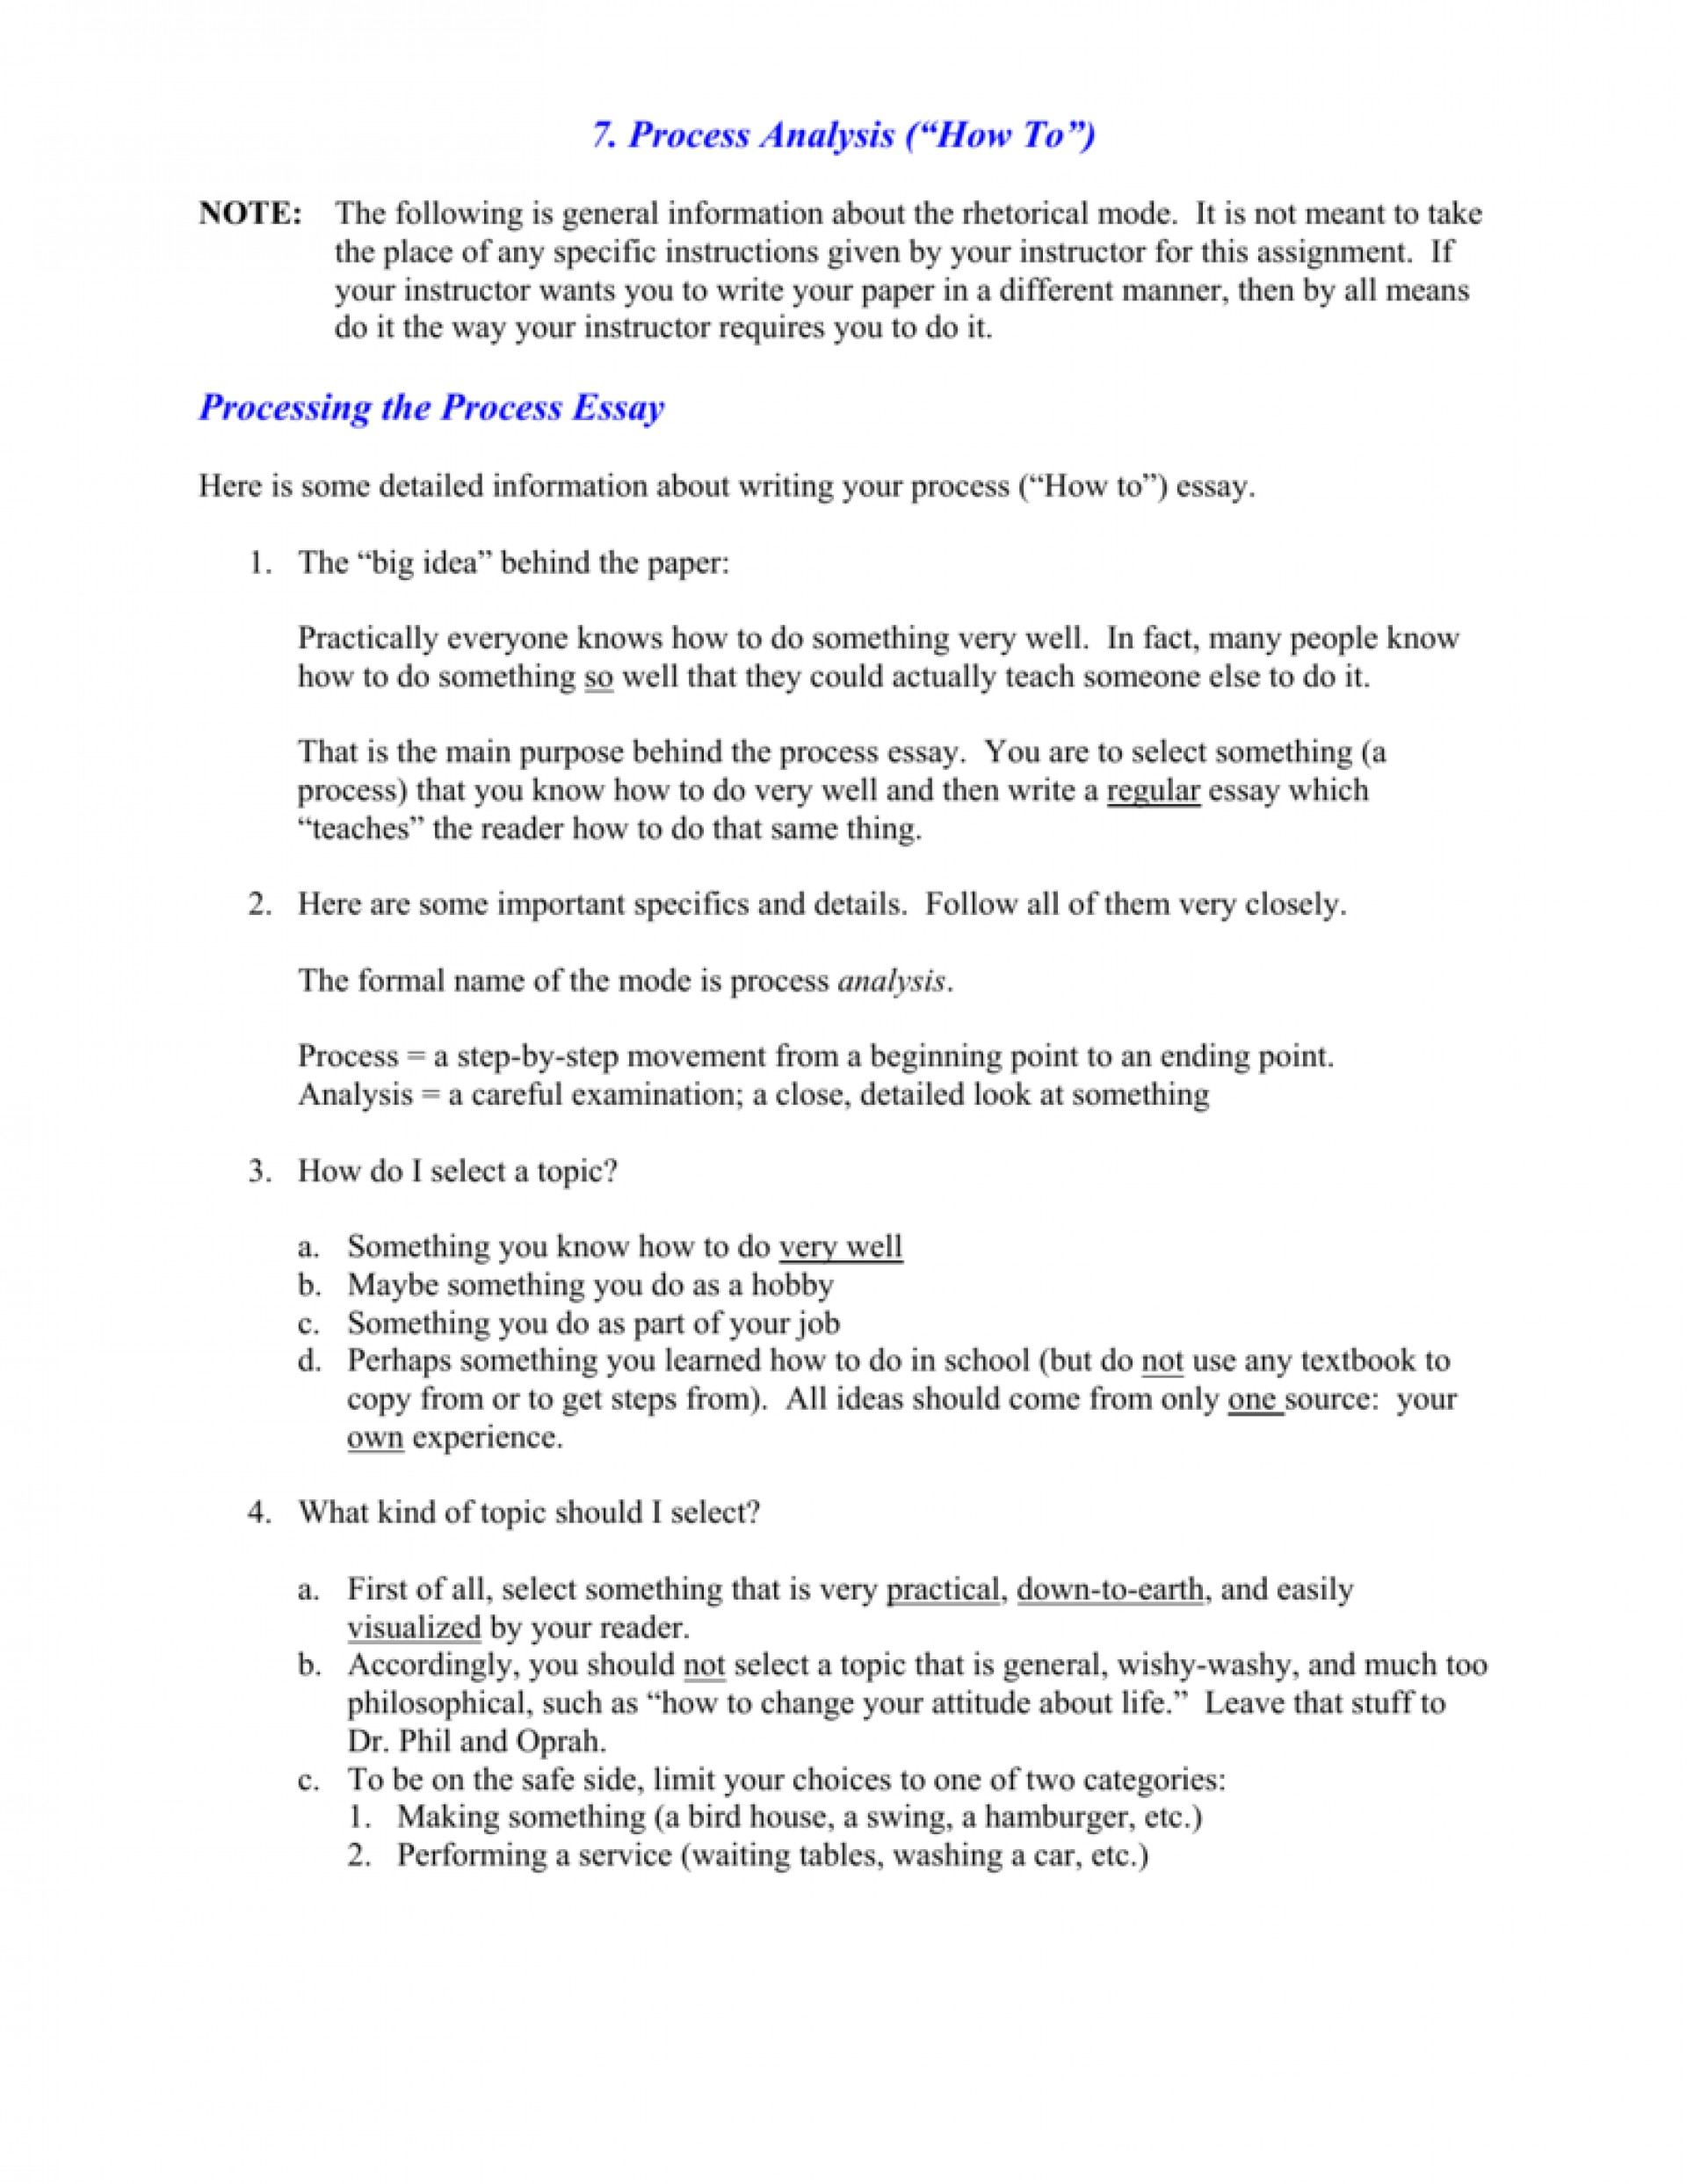 005 008099346 1 Essay Example How To Do Exceptional A Process Start Off You Write Analysis 1920